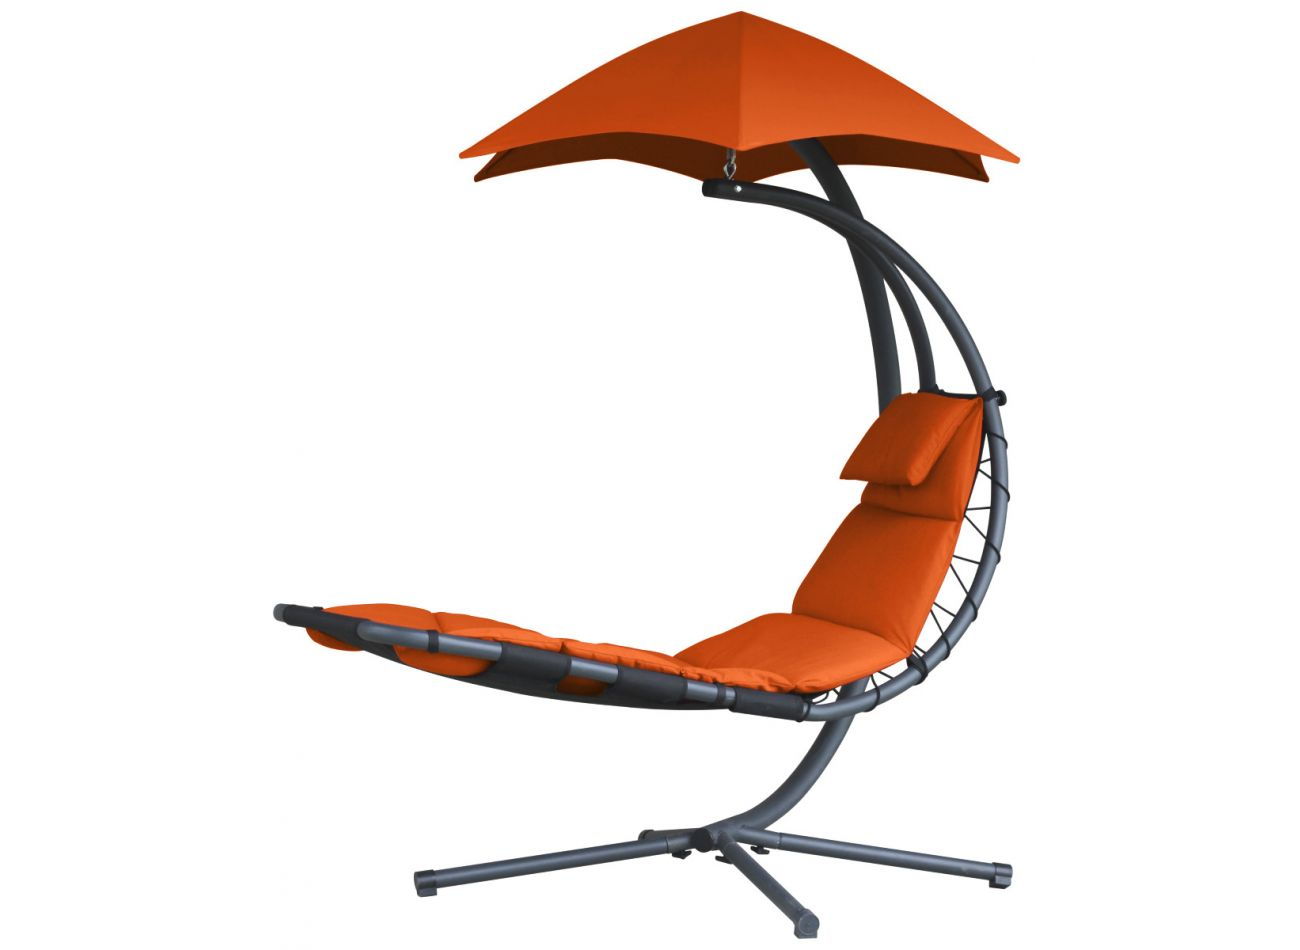 Original 1 Personne Dream Chair Orange